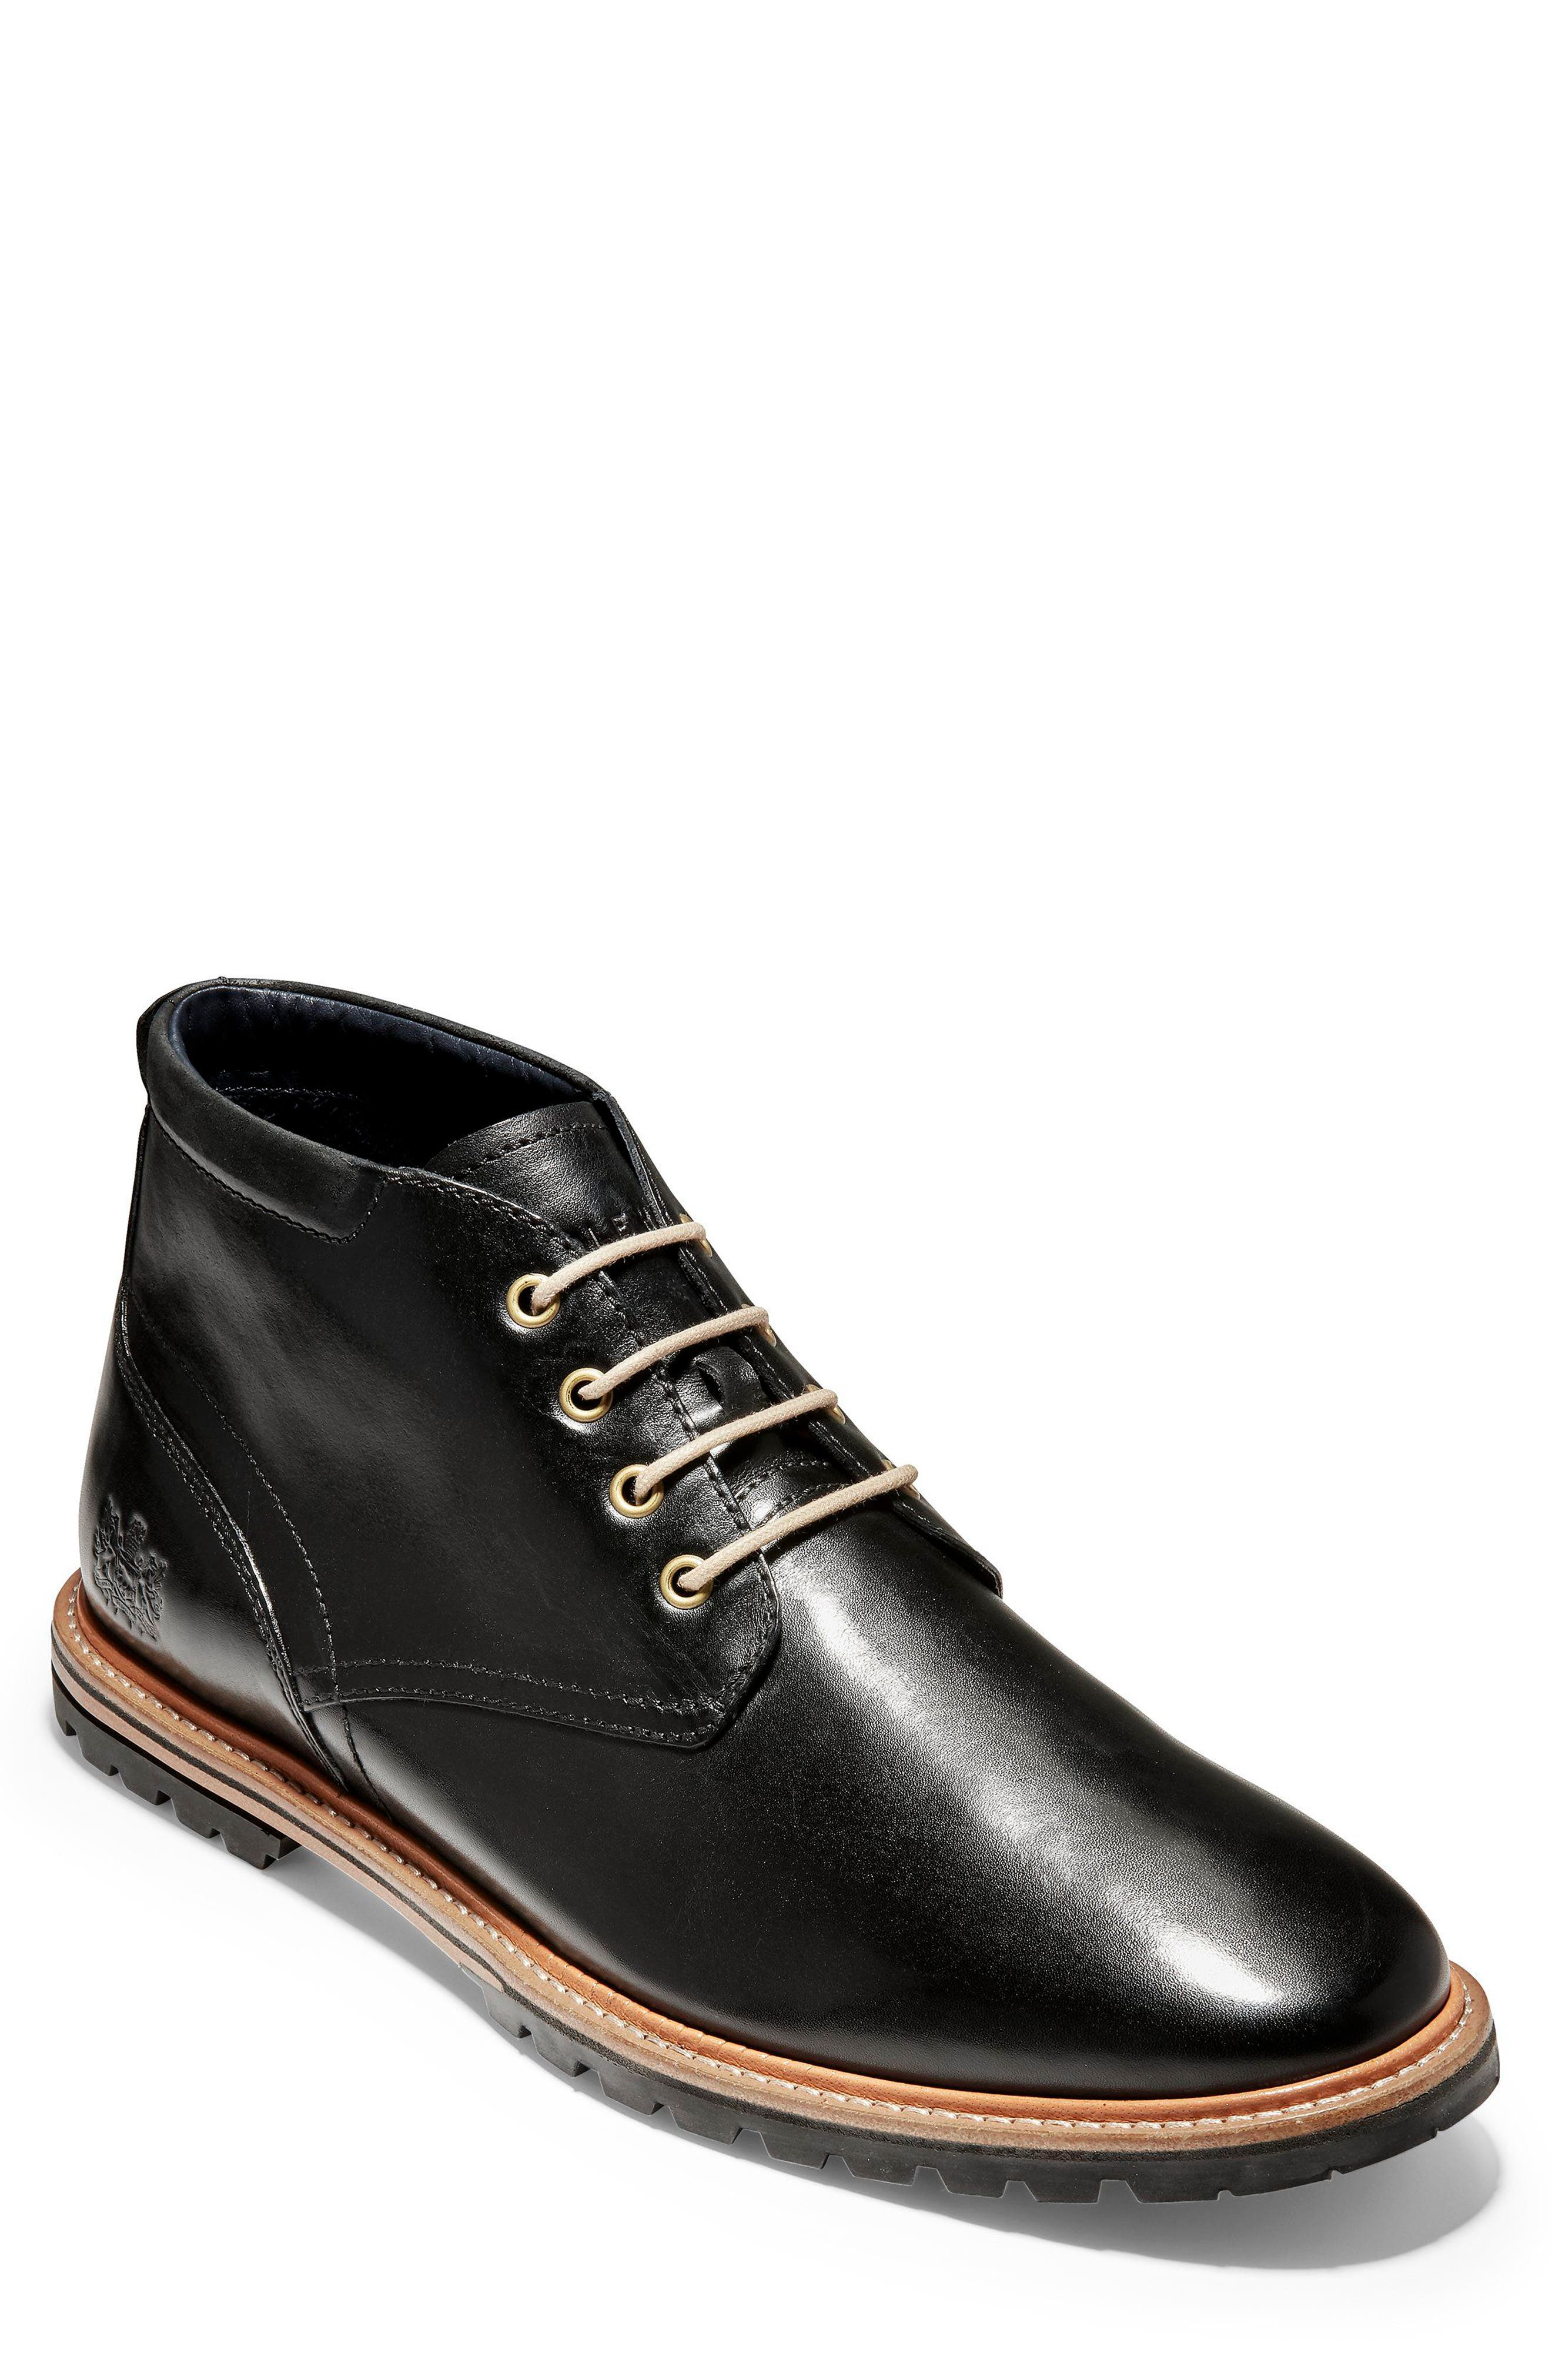 COLE HAAN, Raymond Grand Chukka Boot, Main thumbnail 1, color, BLACK LEATHER